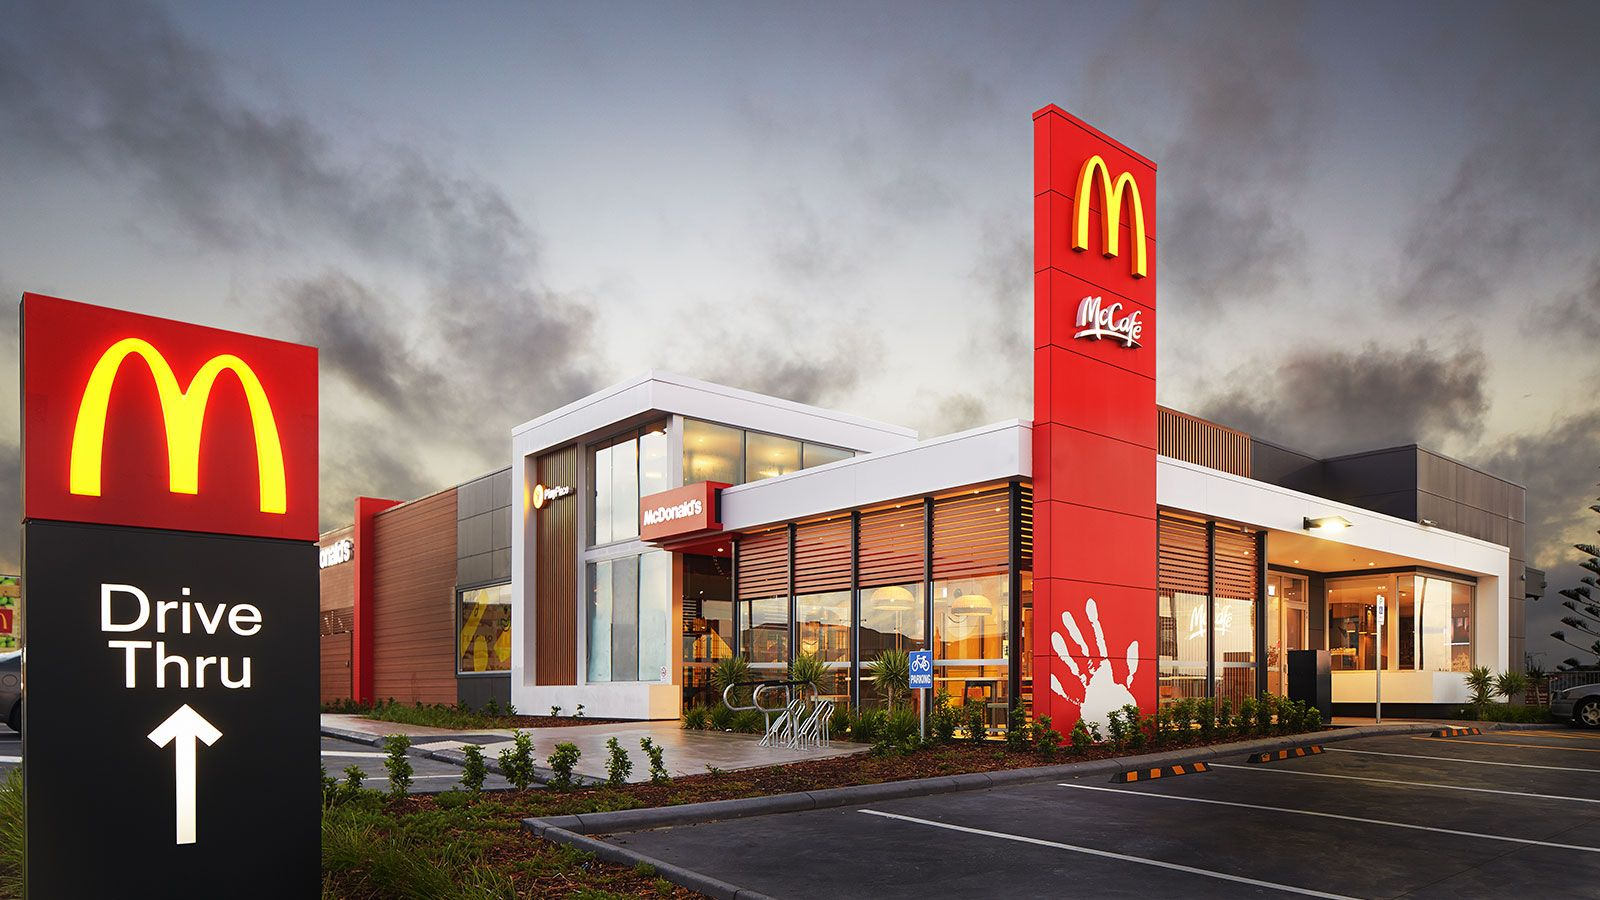 McDonald's consolidates account with DDB Sydney; moves social media from VLMY&R